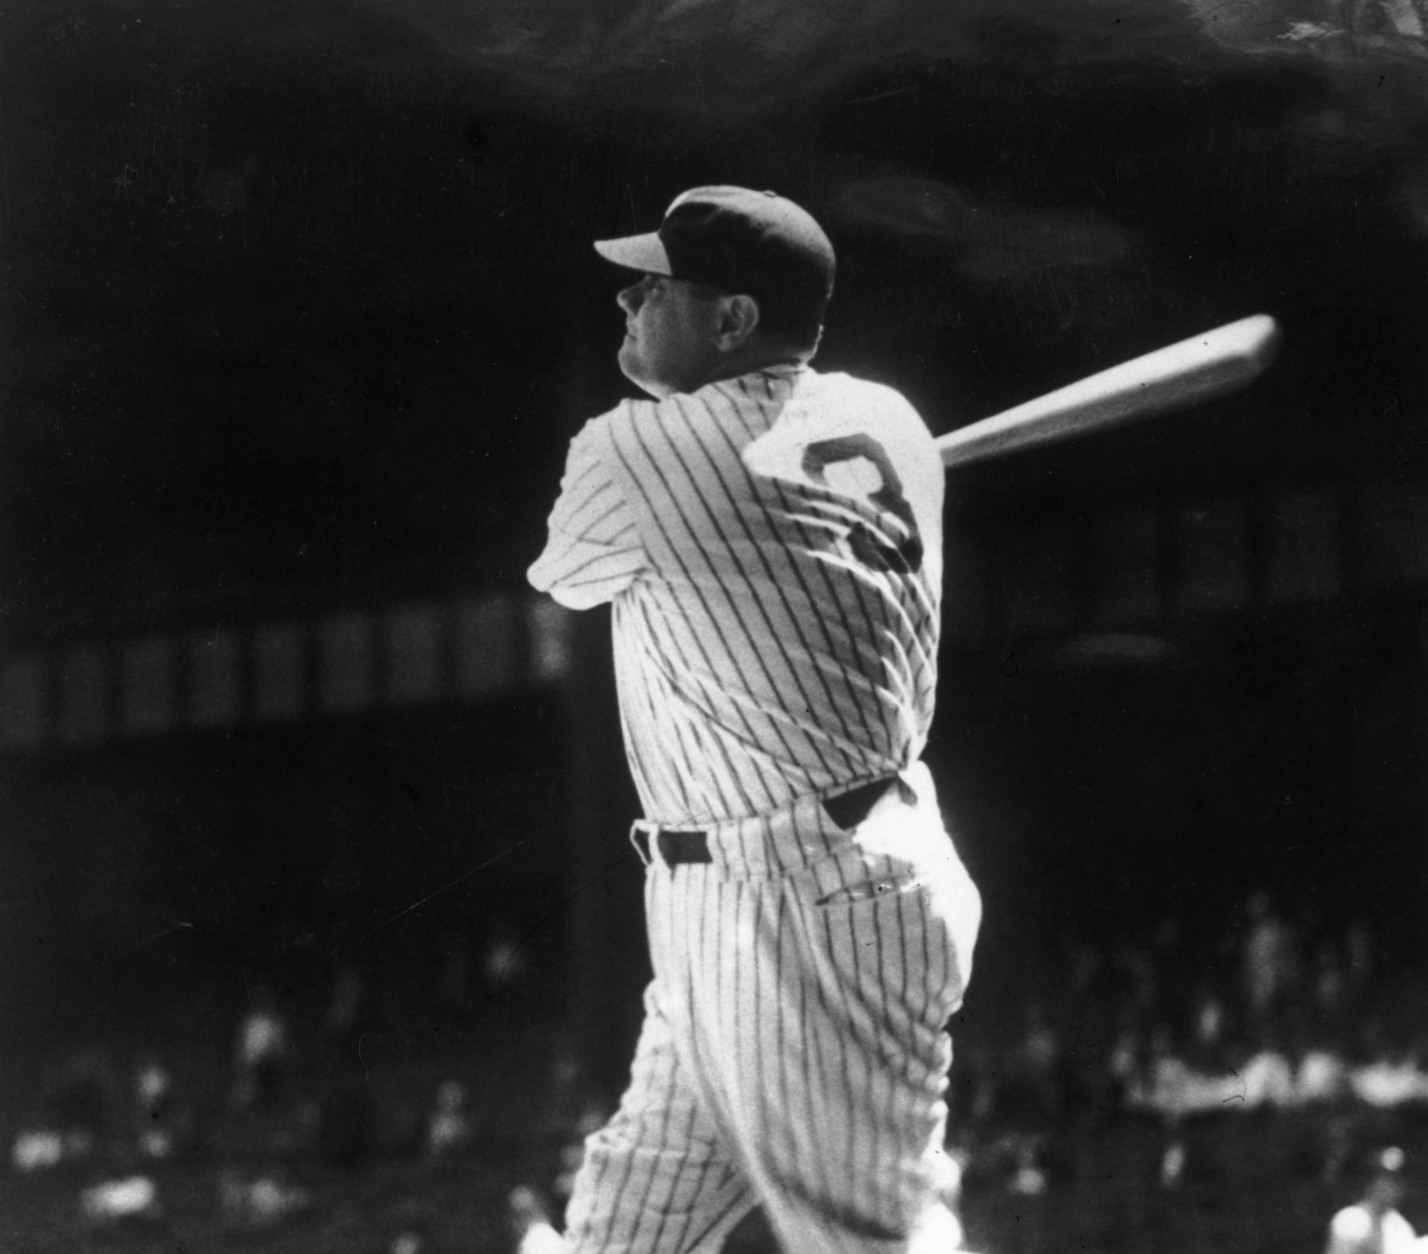 US baseball player 'Babe' Ruth (George Herman Ruth, 1895 - 1948), during a match.  Original Publication: People Disc - HK0045   (Photo by General Photographic Agency/Getty Images)